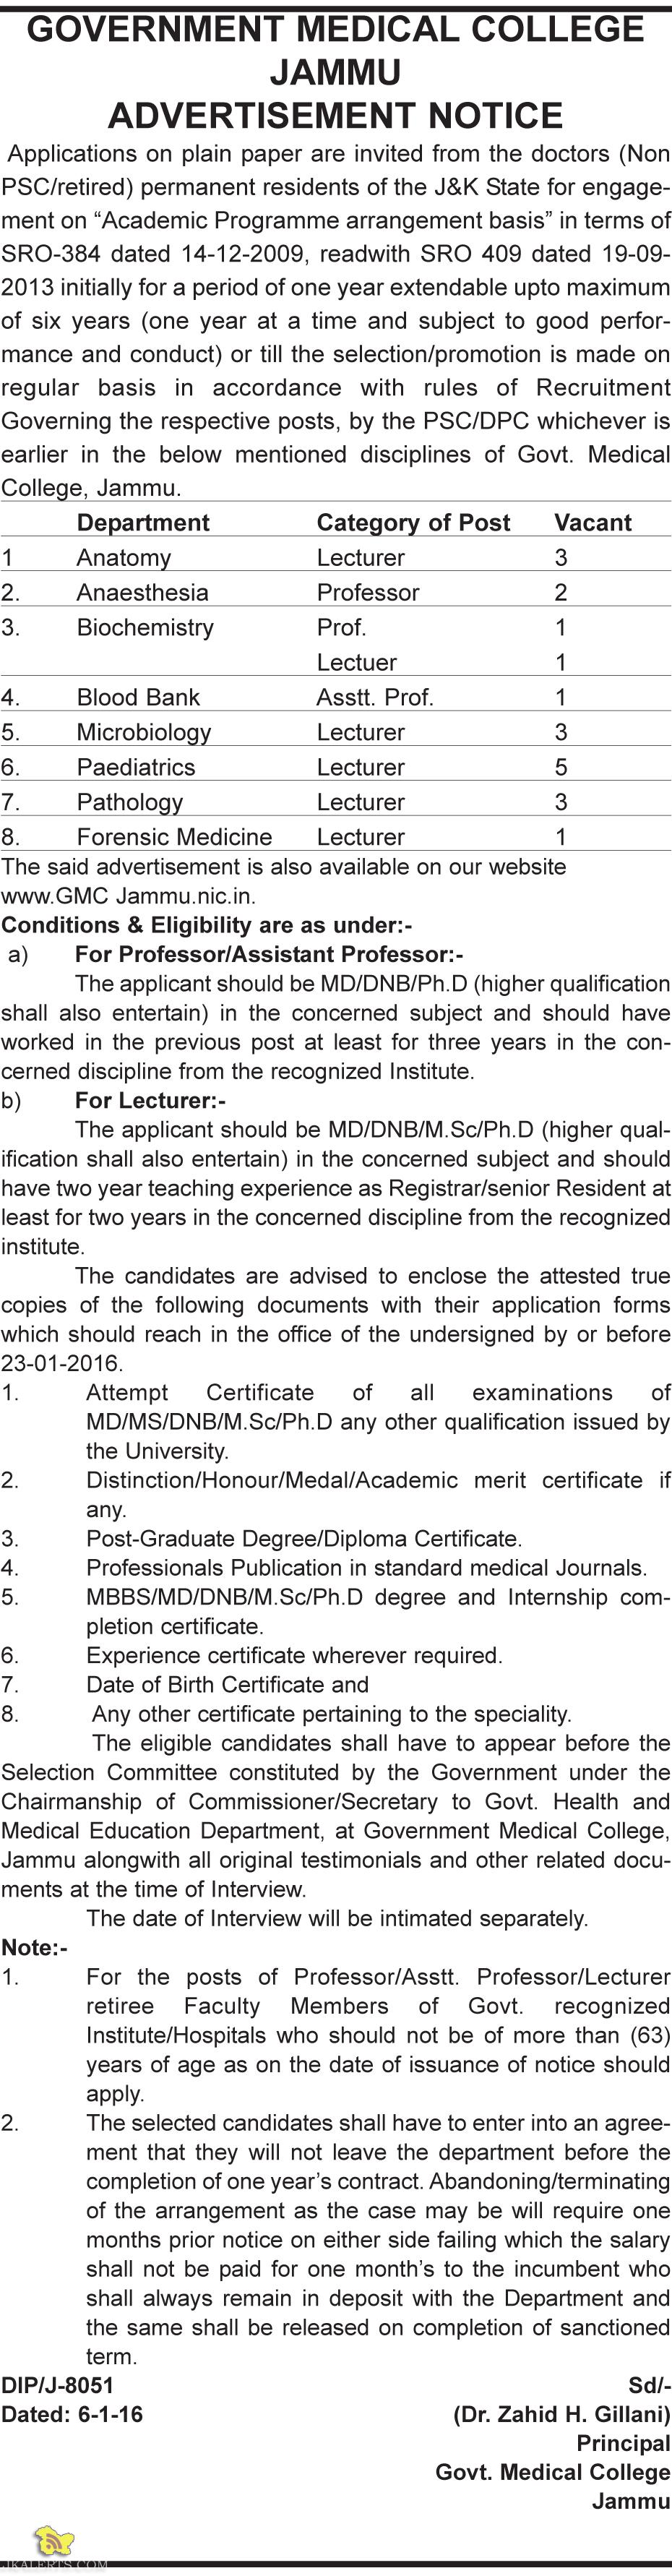 Jobs in GOVERNMENT MEDICAL COLLEGE JAMMU